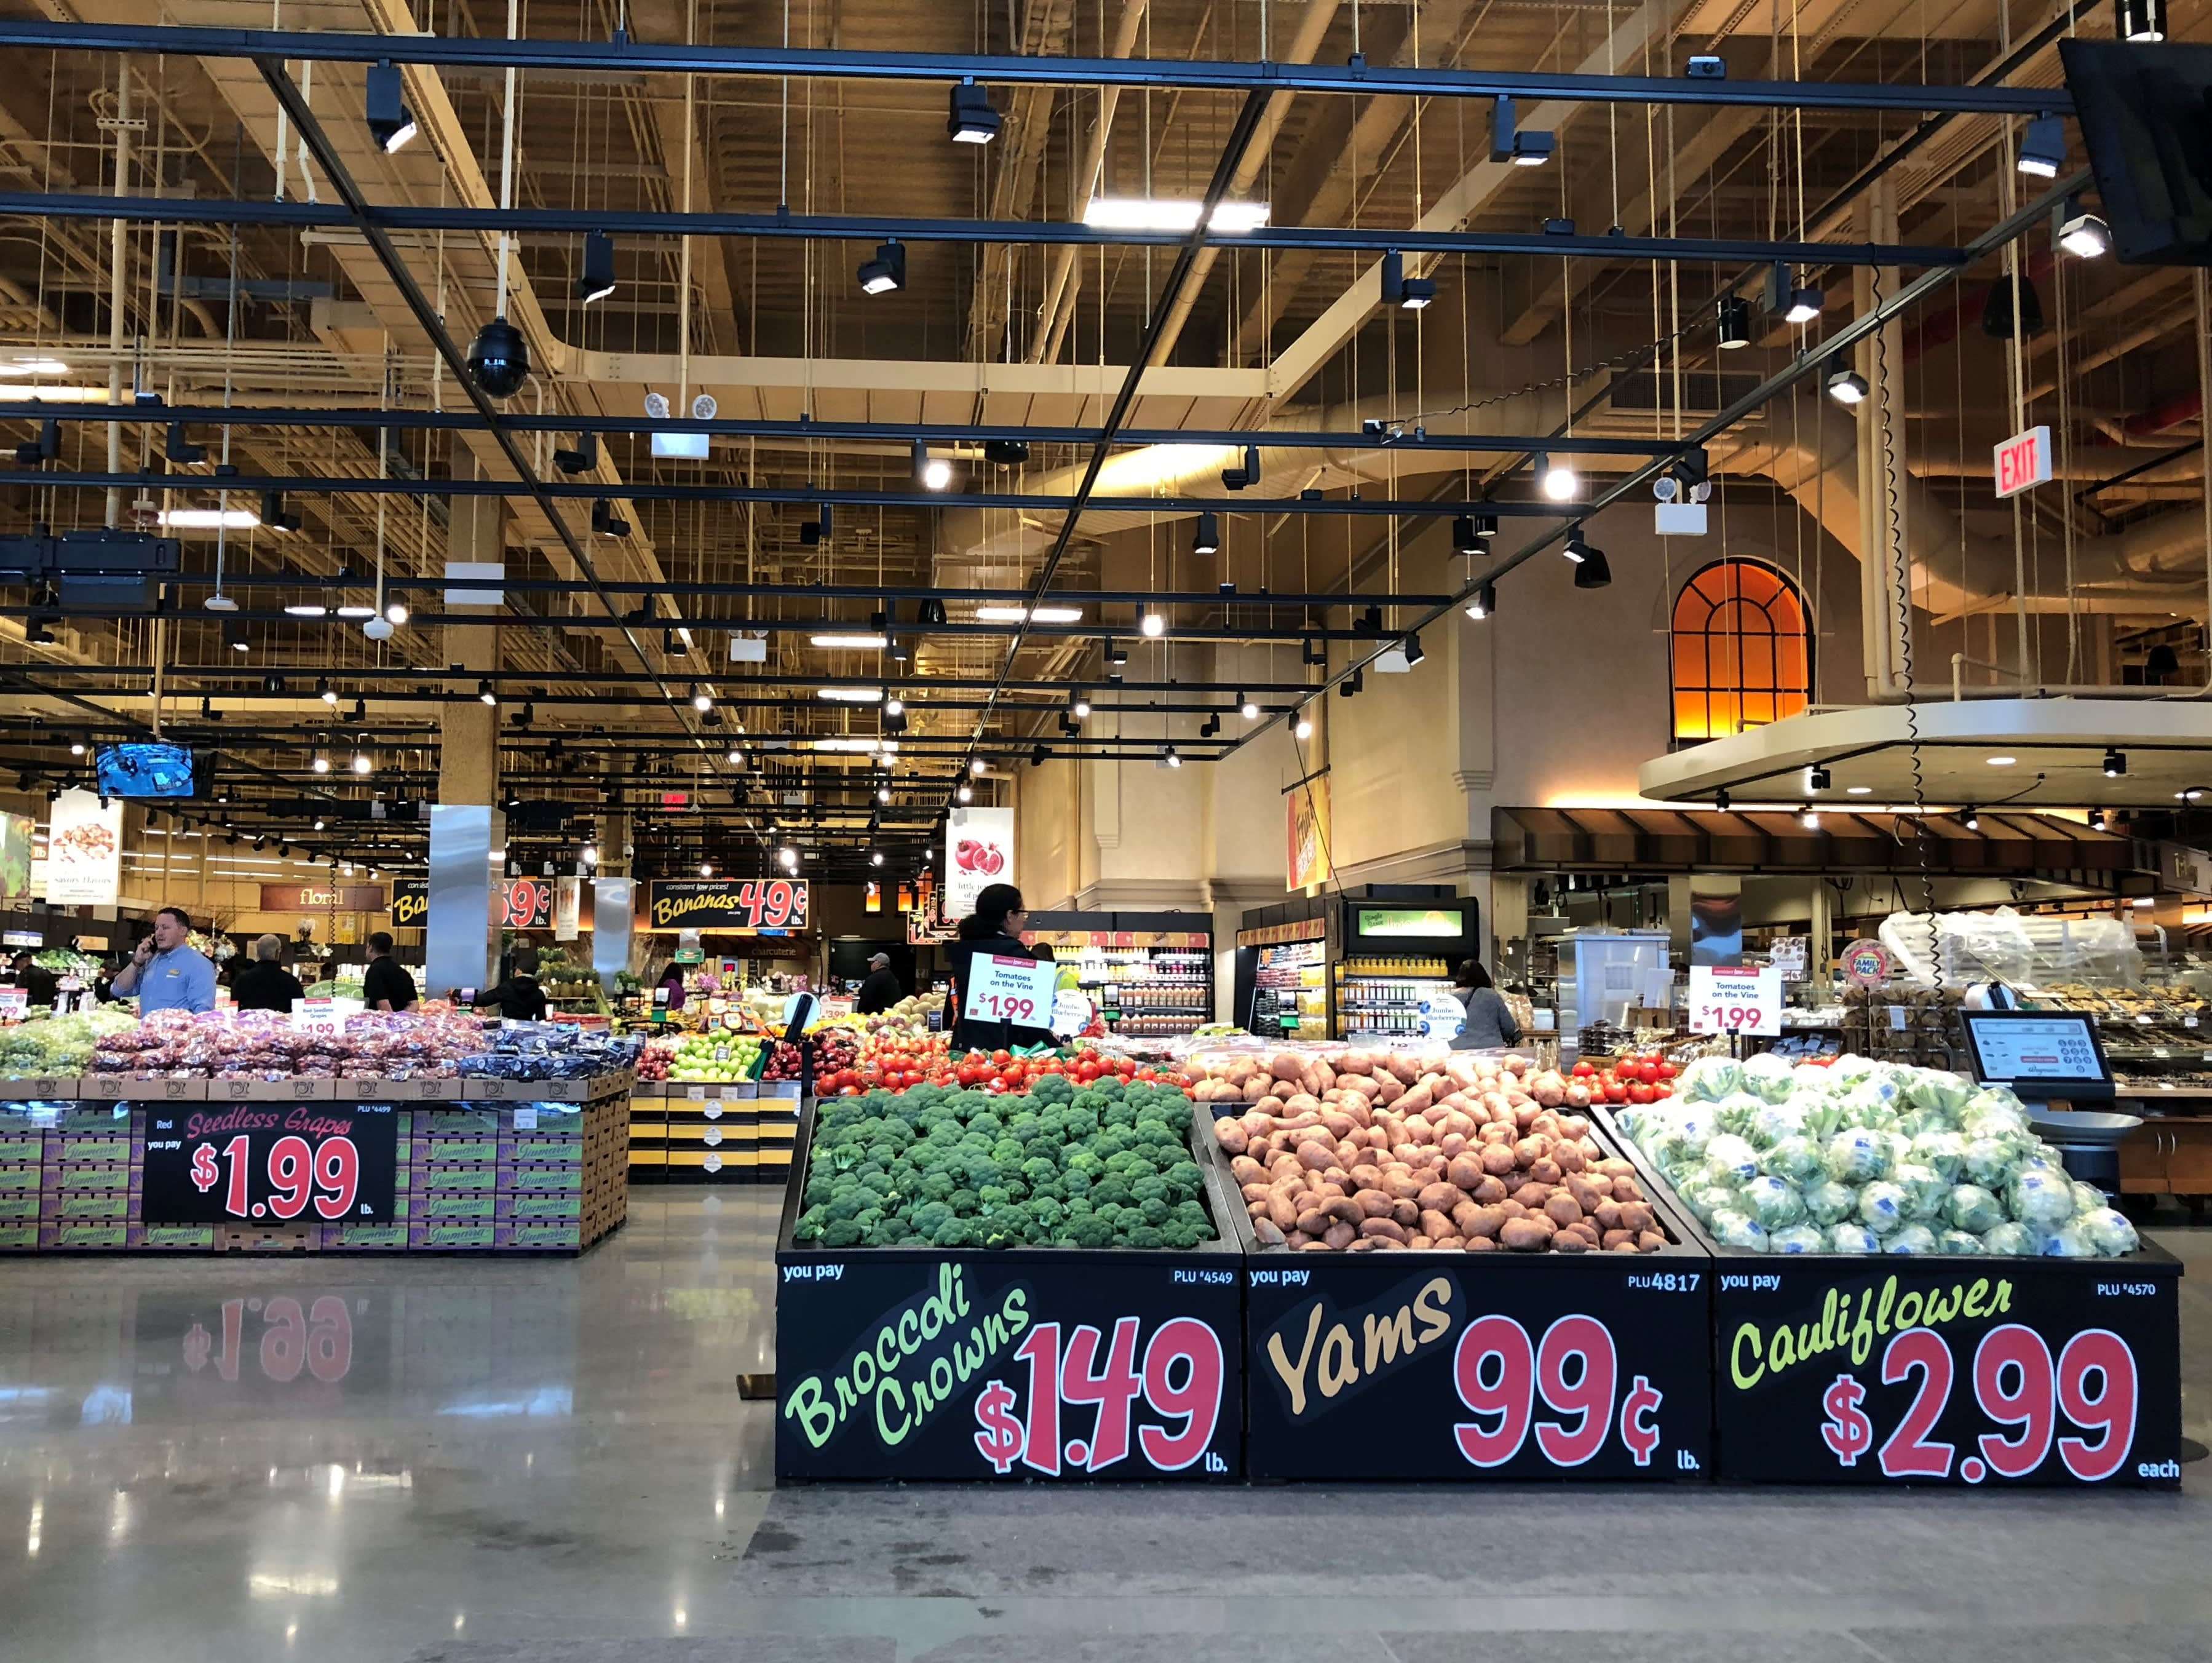 Wegmans is moving into an old Kmart location to open its first Manhattan store